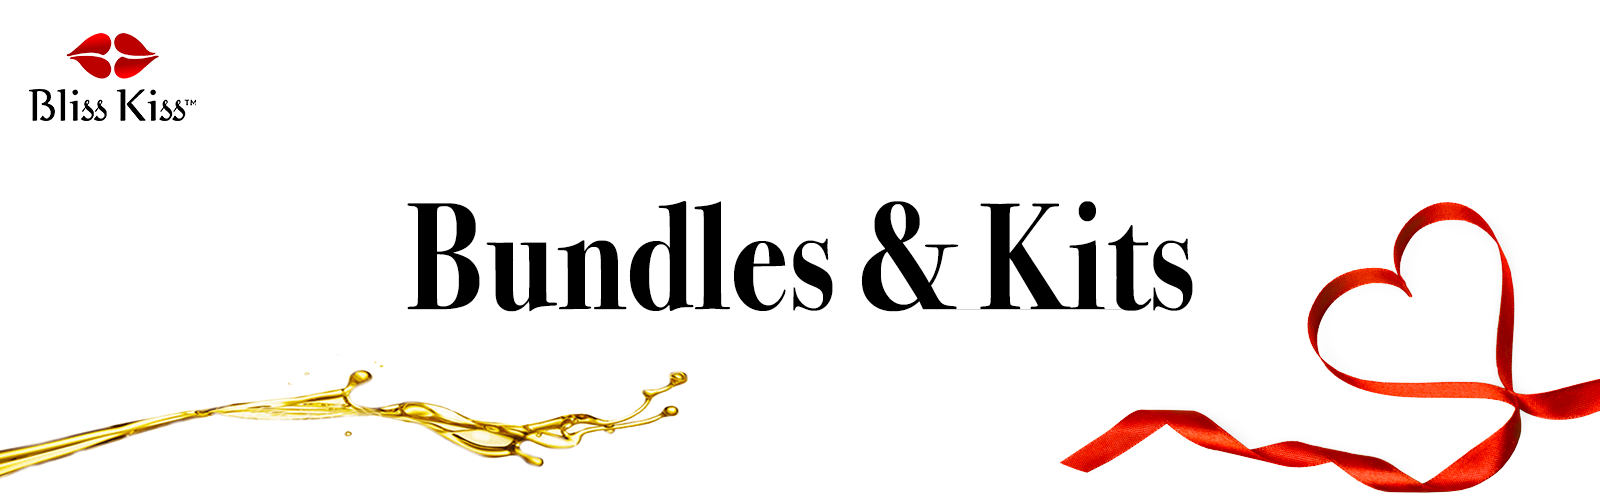 bundles-and-kits.png